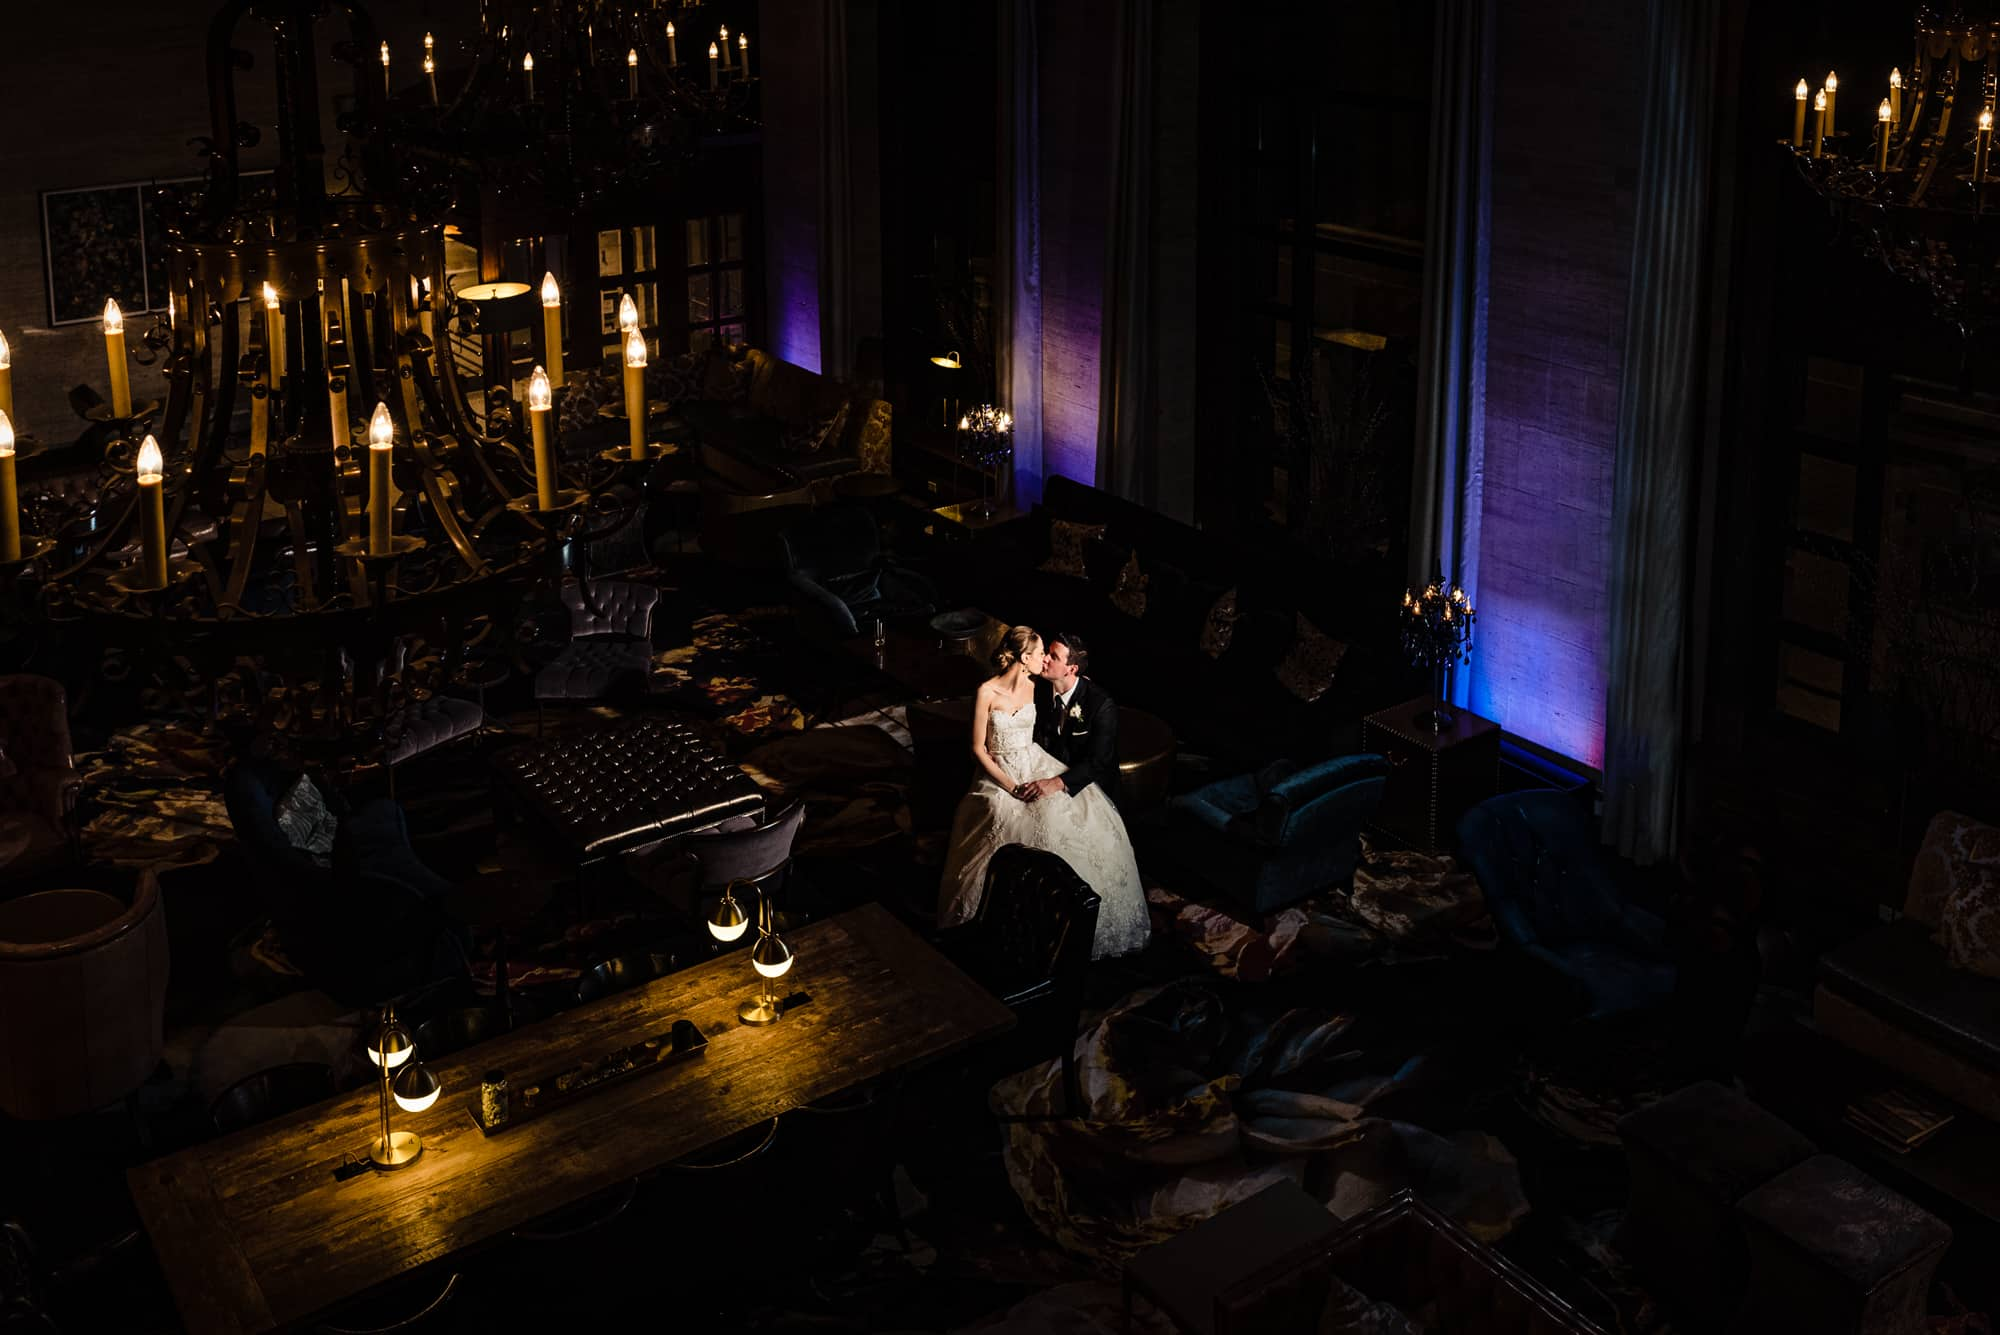 Romantic photo of bride and groom at Hotel DuPont in Wilmington Delaware